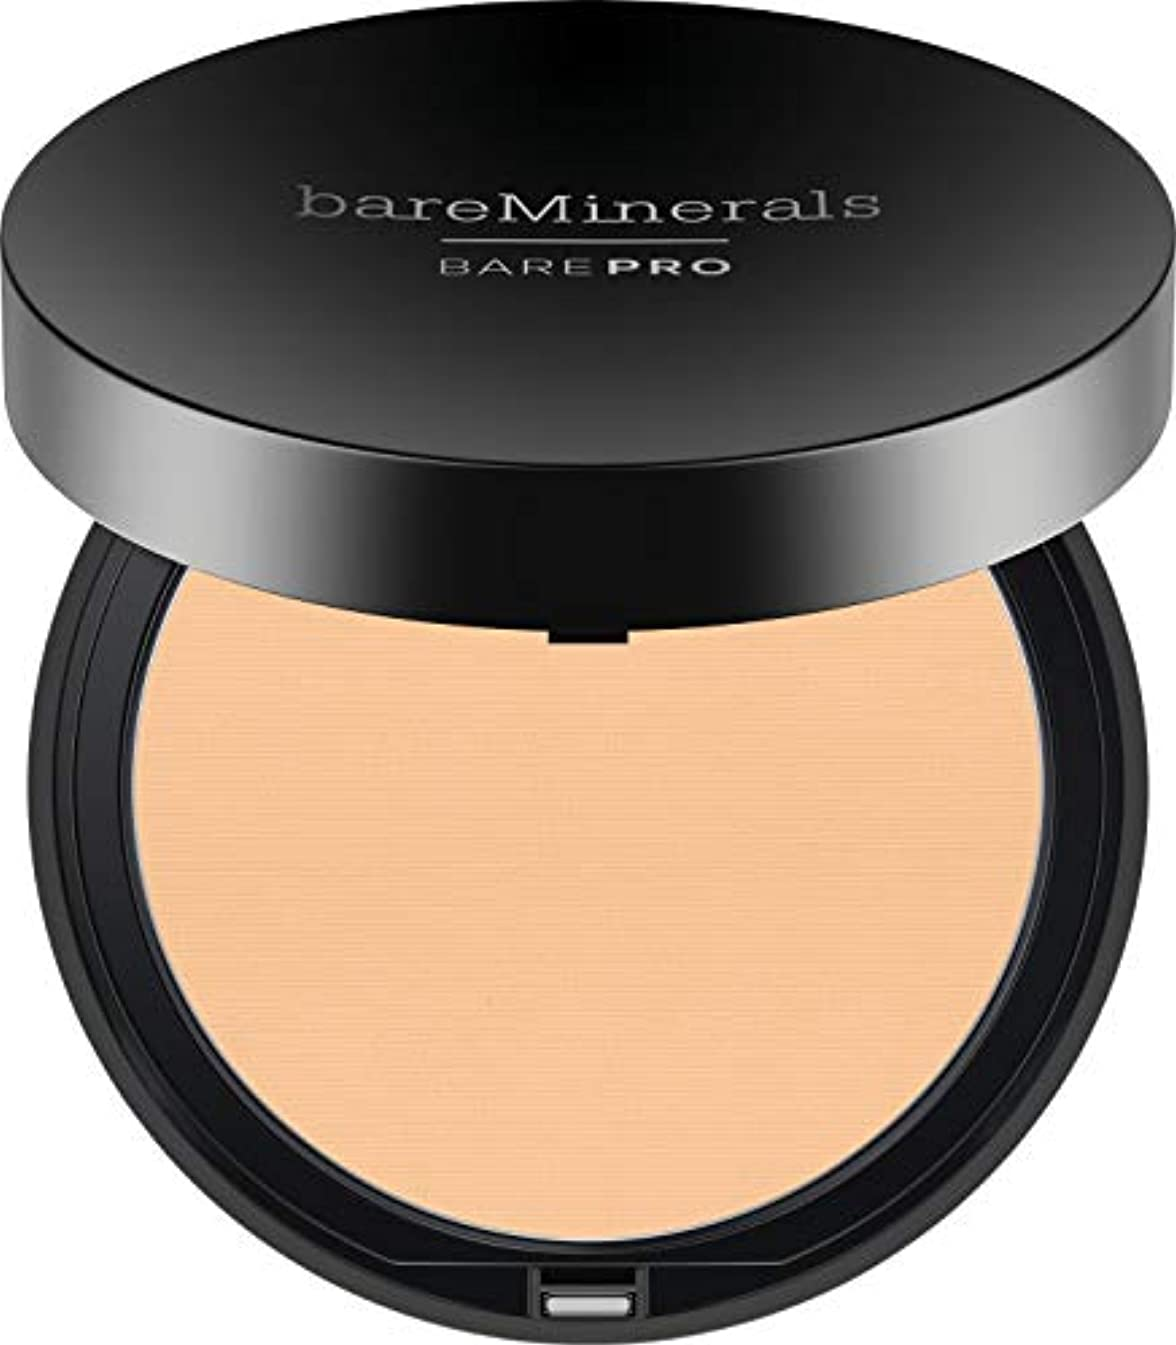 ベアミネラル BarePro Performance Wear Powder Foundation - # 07 Warm Light 10g/0.34oz並行輸入品